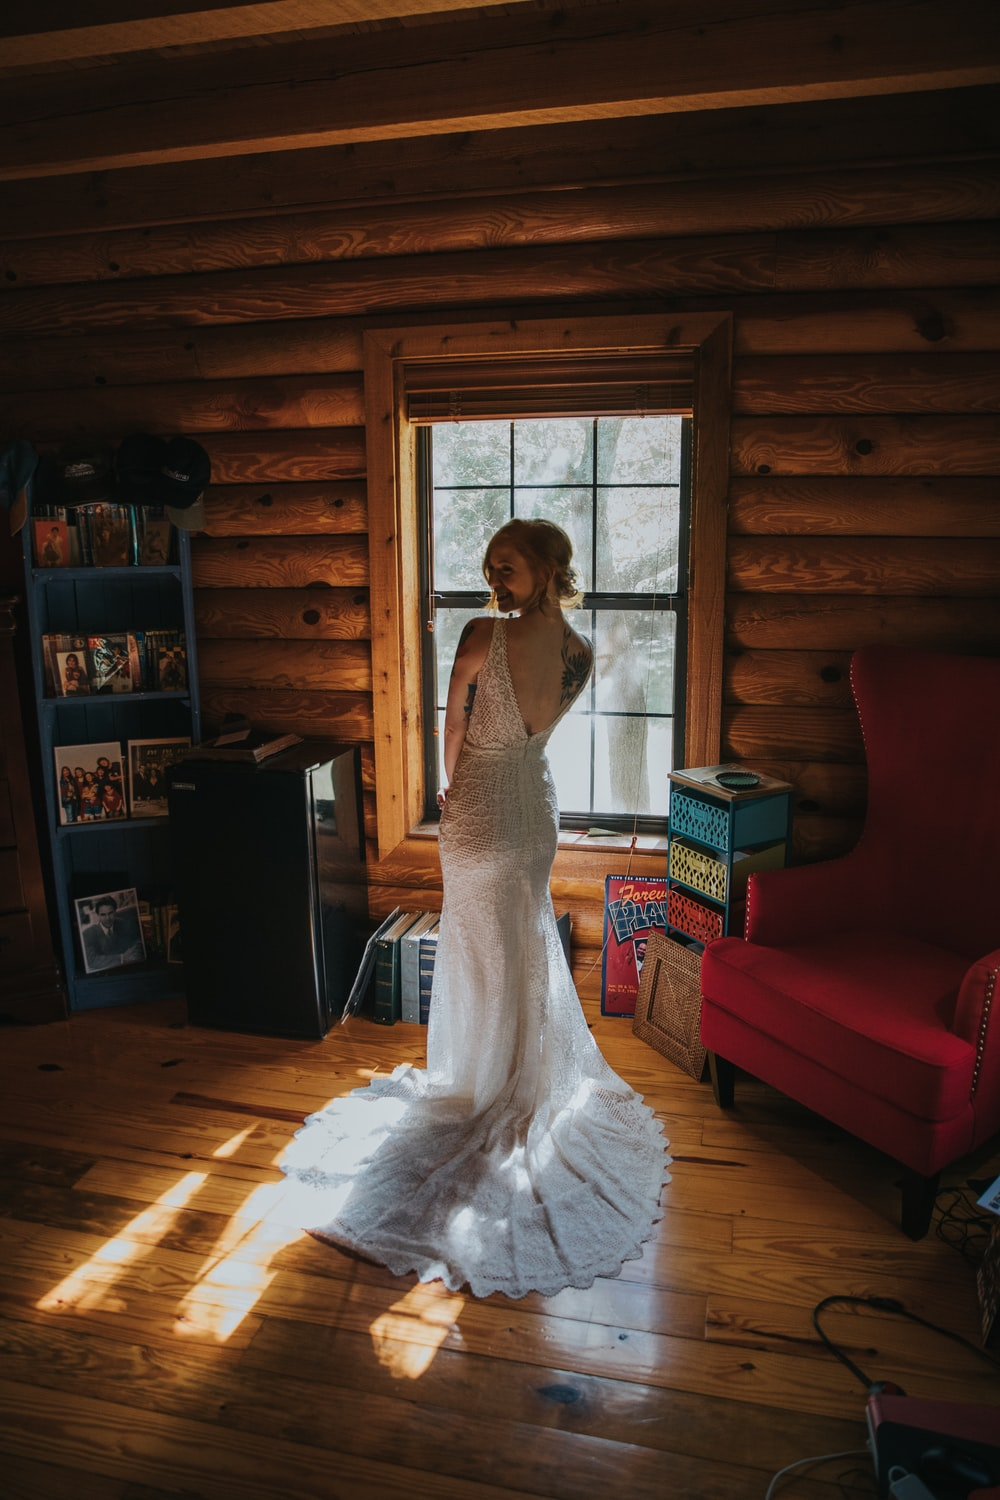 woman wearing white gown standing inside the house